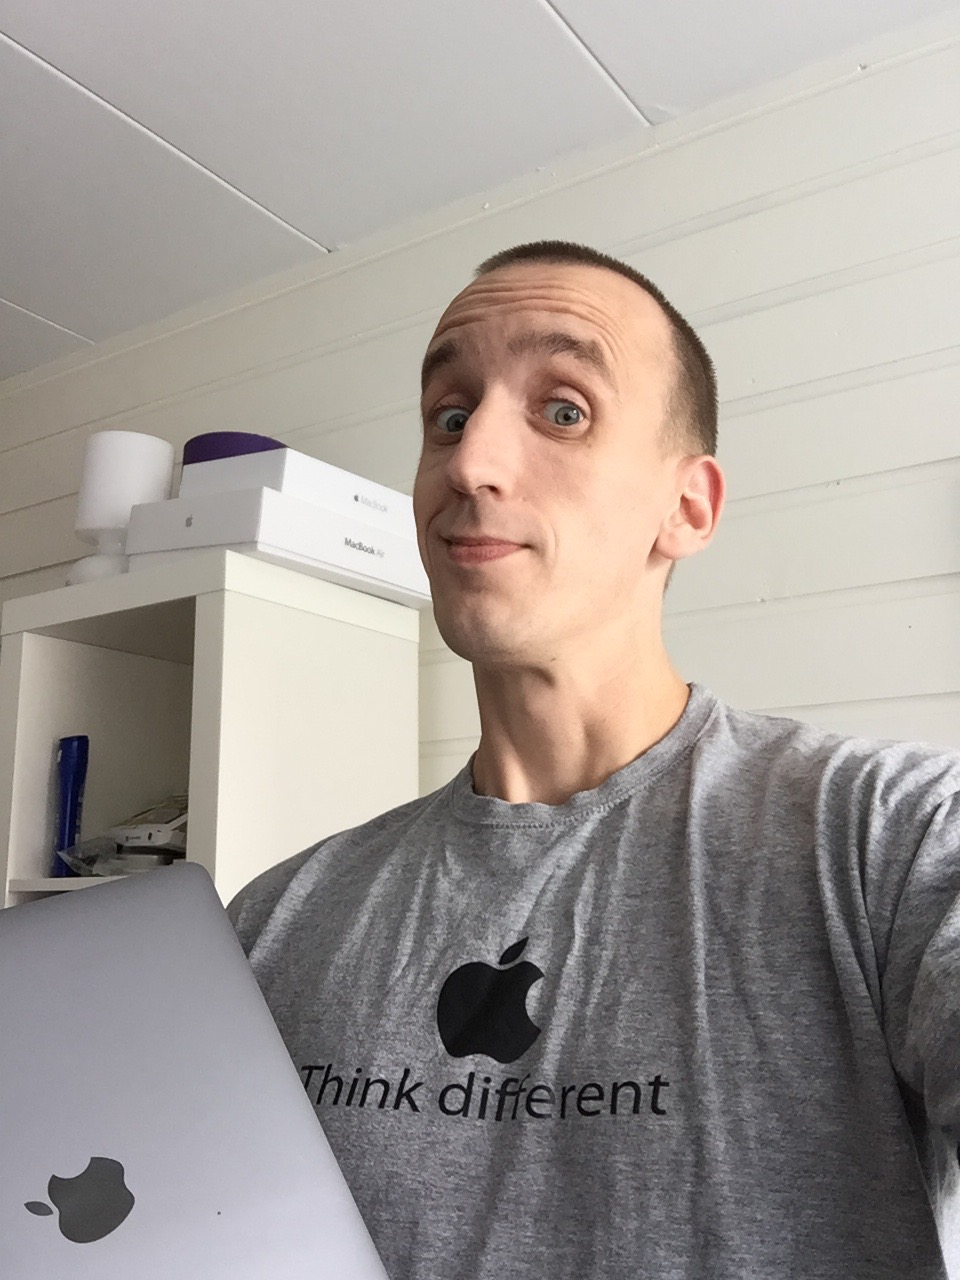 same colour and style Macbook and t-shirt